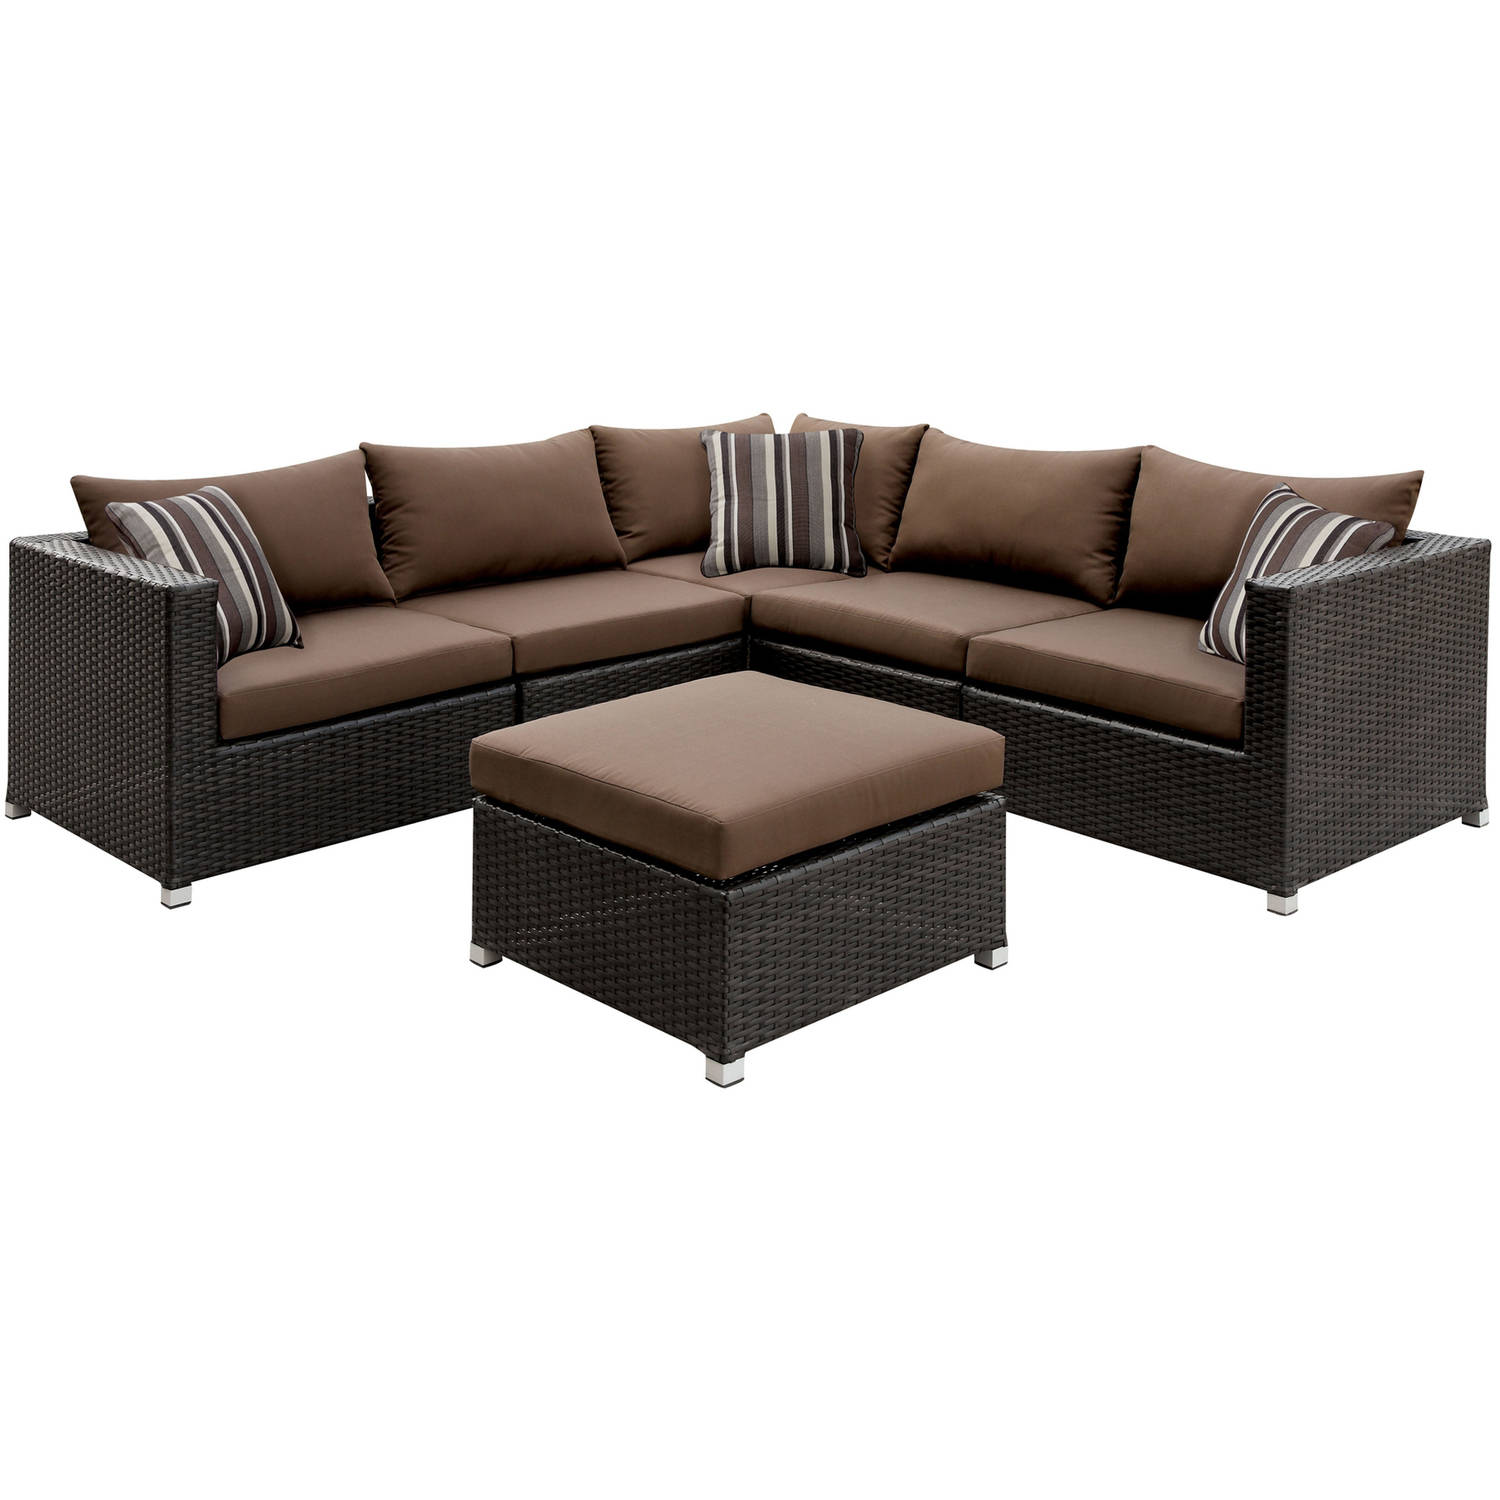 Furniture of America Baca Patio Sectional and Ottoman Set, Ivory